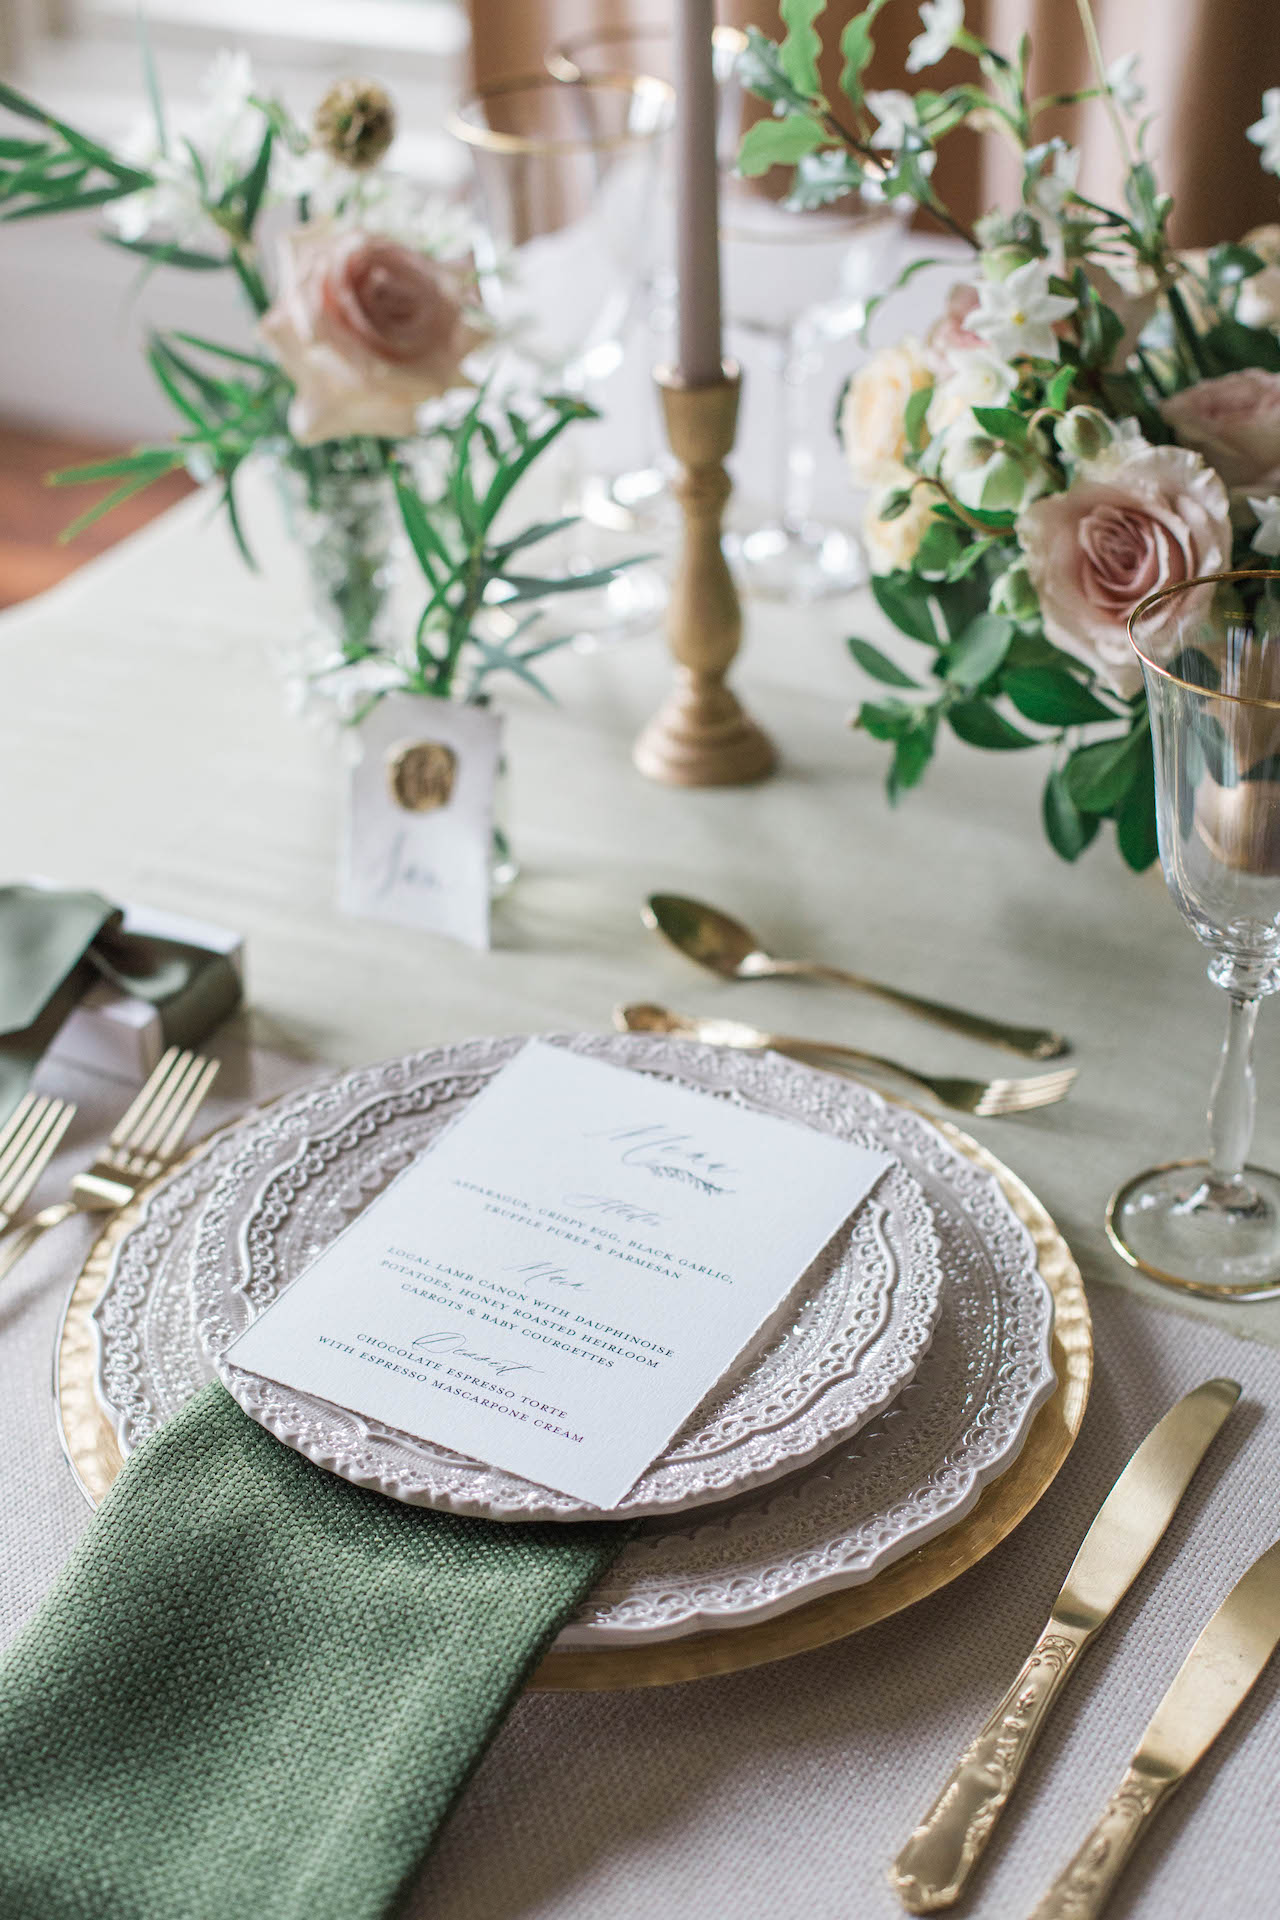 place setting at luxury wedding designed by Kimberley Rose Designs